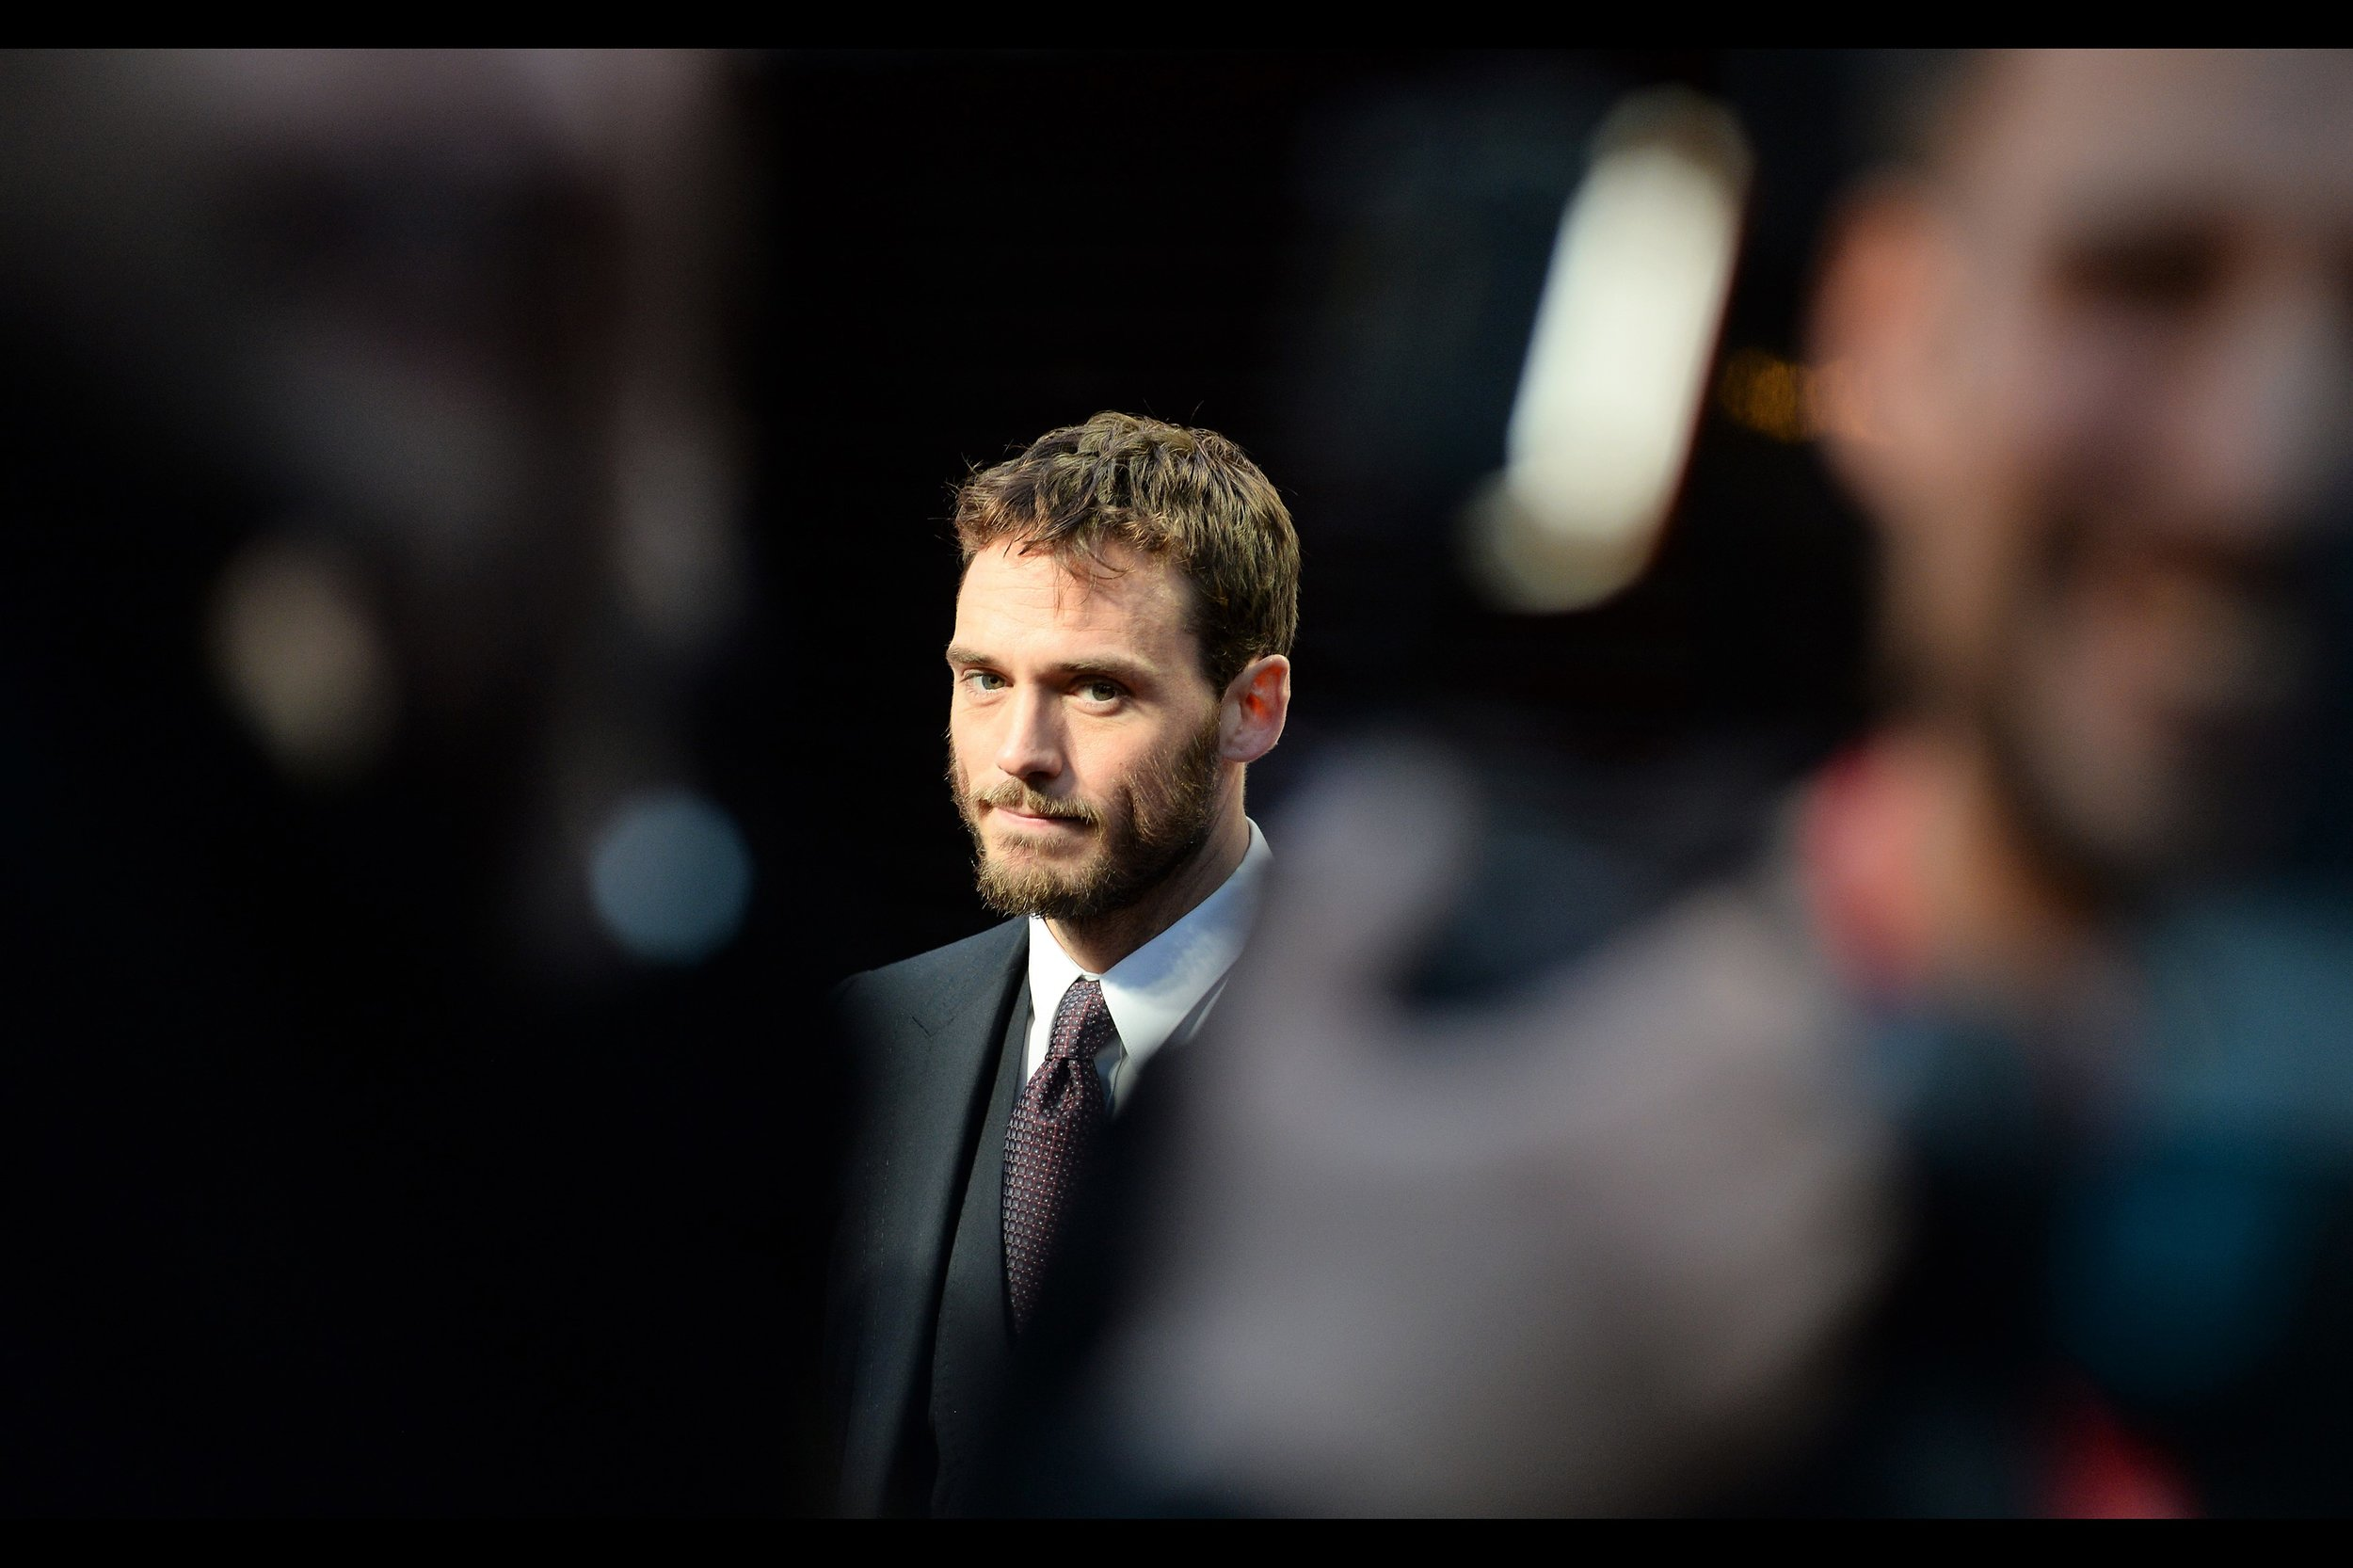 October 6th (part II) : barely fifteen minutes after the prior premiere (a barely fifteen minute walk away) - a second premiere for the day, with Sam Claflin for    'Journey's End'   .